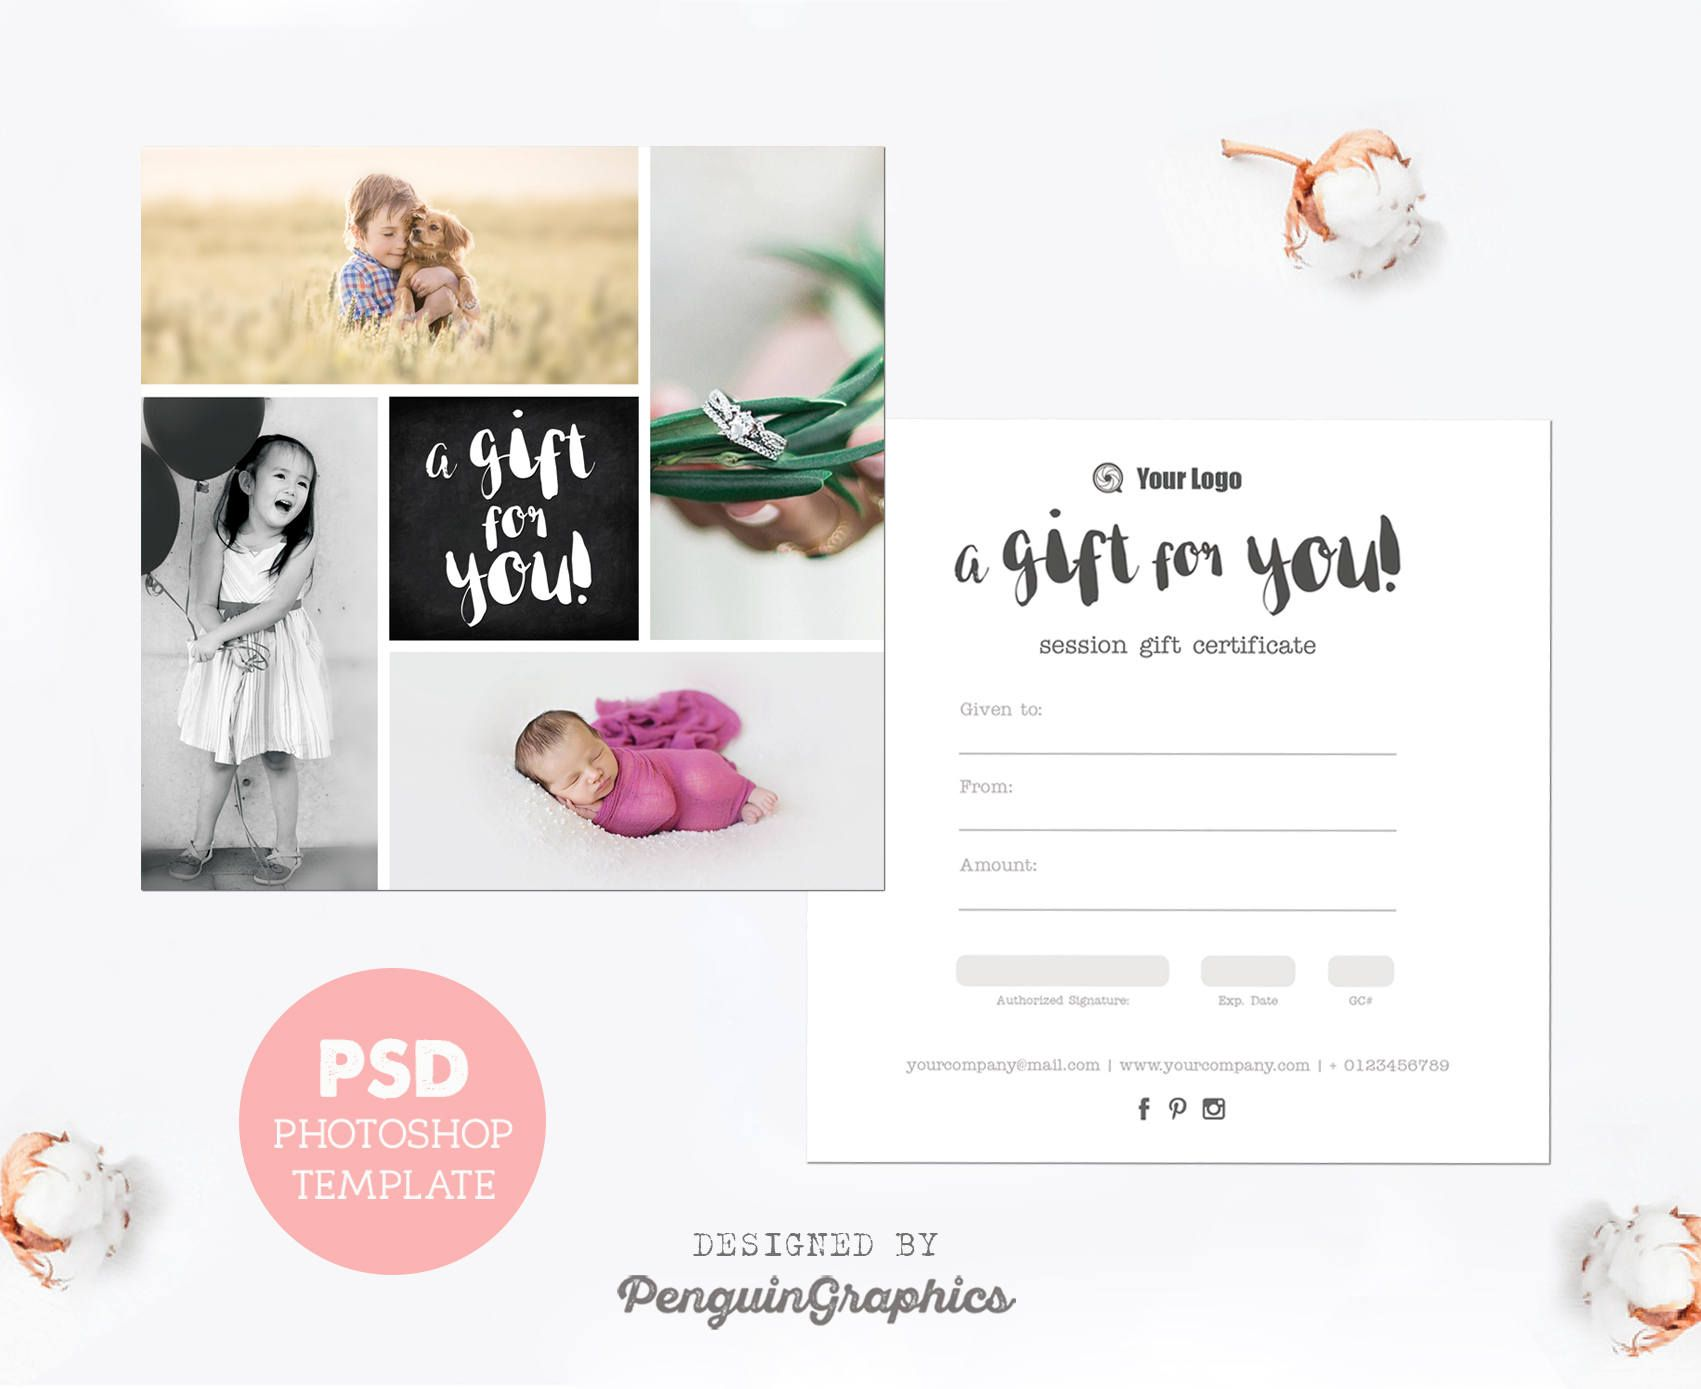 Pin by kate blankenship on fontastic pinterest gift certificate photography mini sessions photography gifts gift certificate template gift certificates psd templates adobe photoshop gift cards edit text yelopaper Choice Image